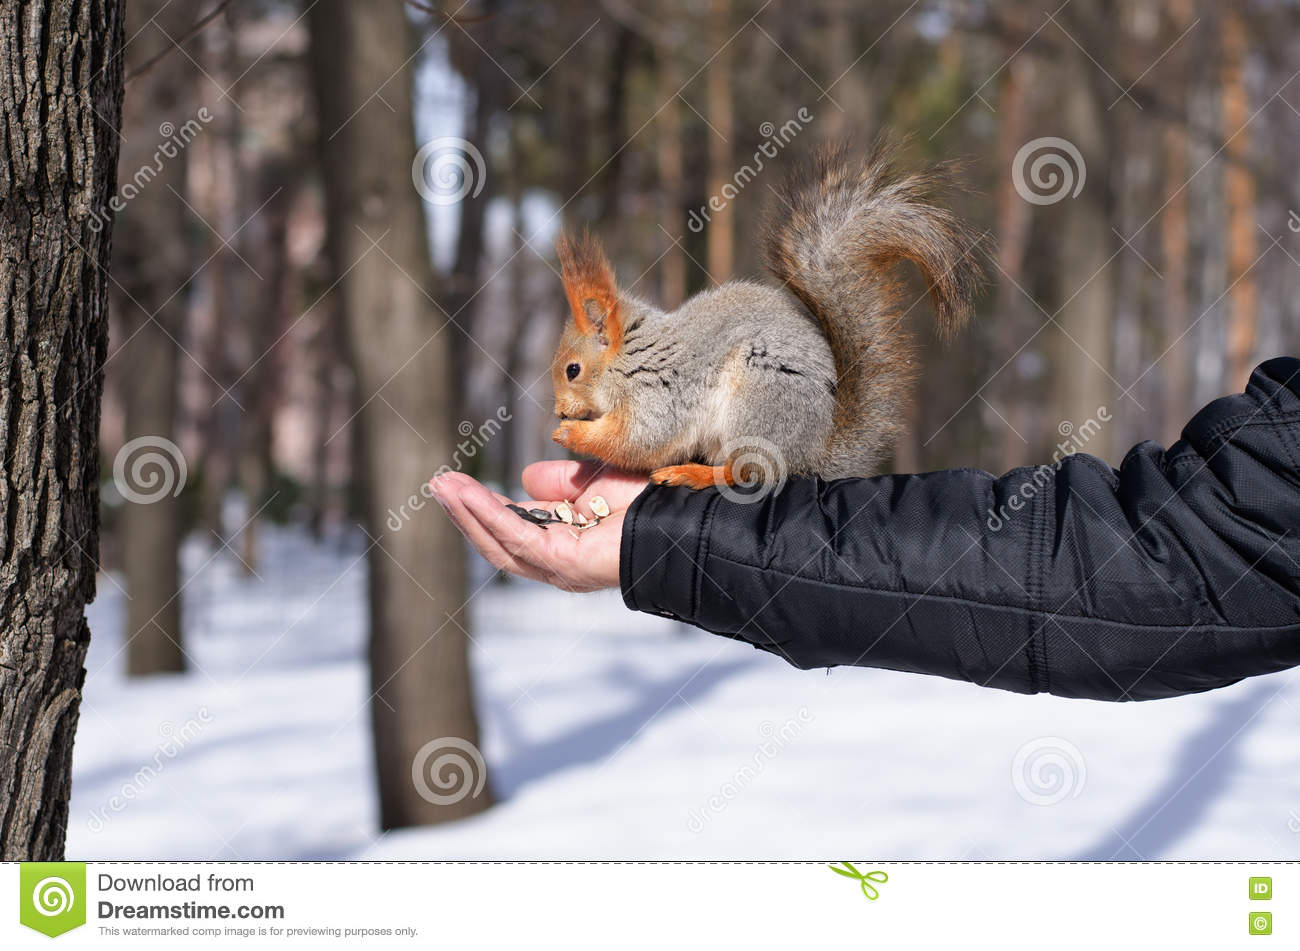 squirrel single guys Squirrel's best 100% free singles dating site meet thousands of singles in squirrel with mingle2's free personal ads and chat rooms our network of single men and women in squirrel is the perfect place to make friends or find a boyfriend or girlfriend in squirrel.